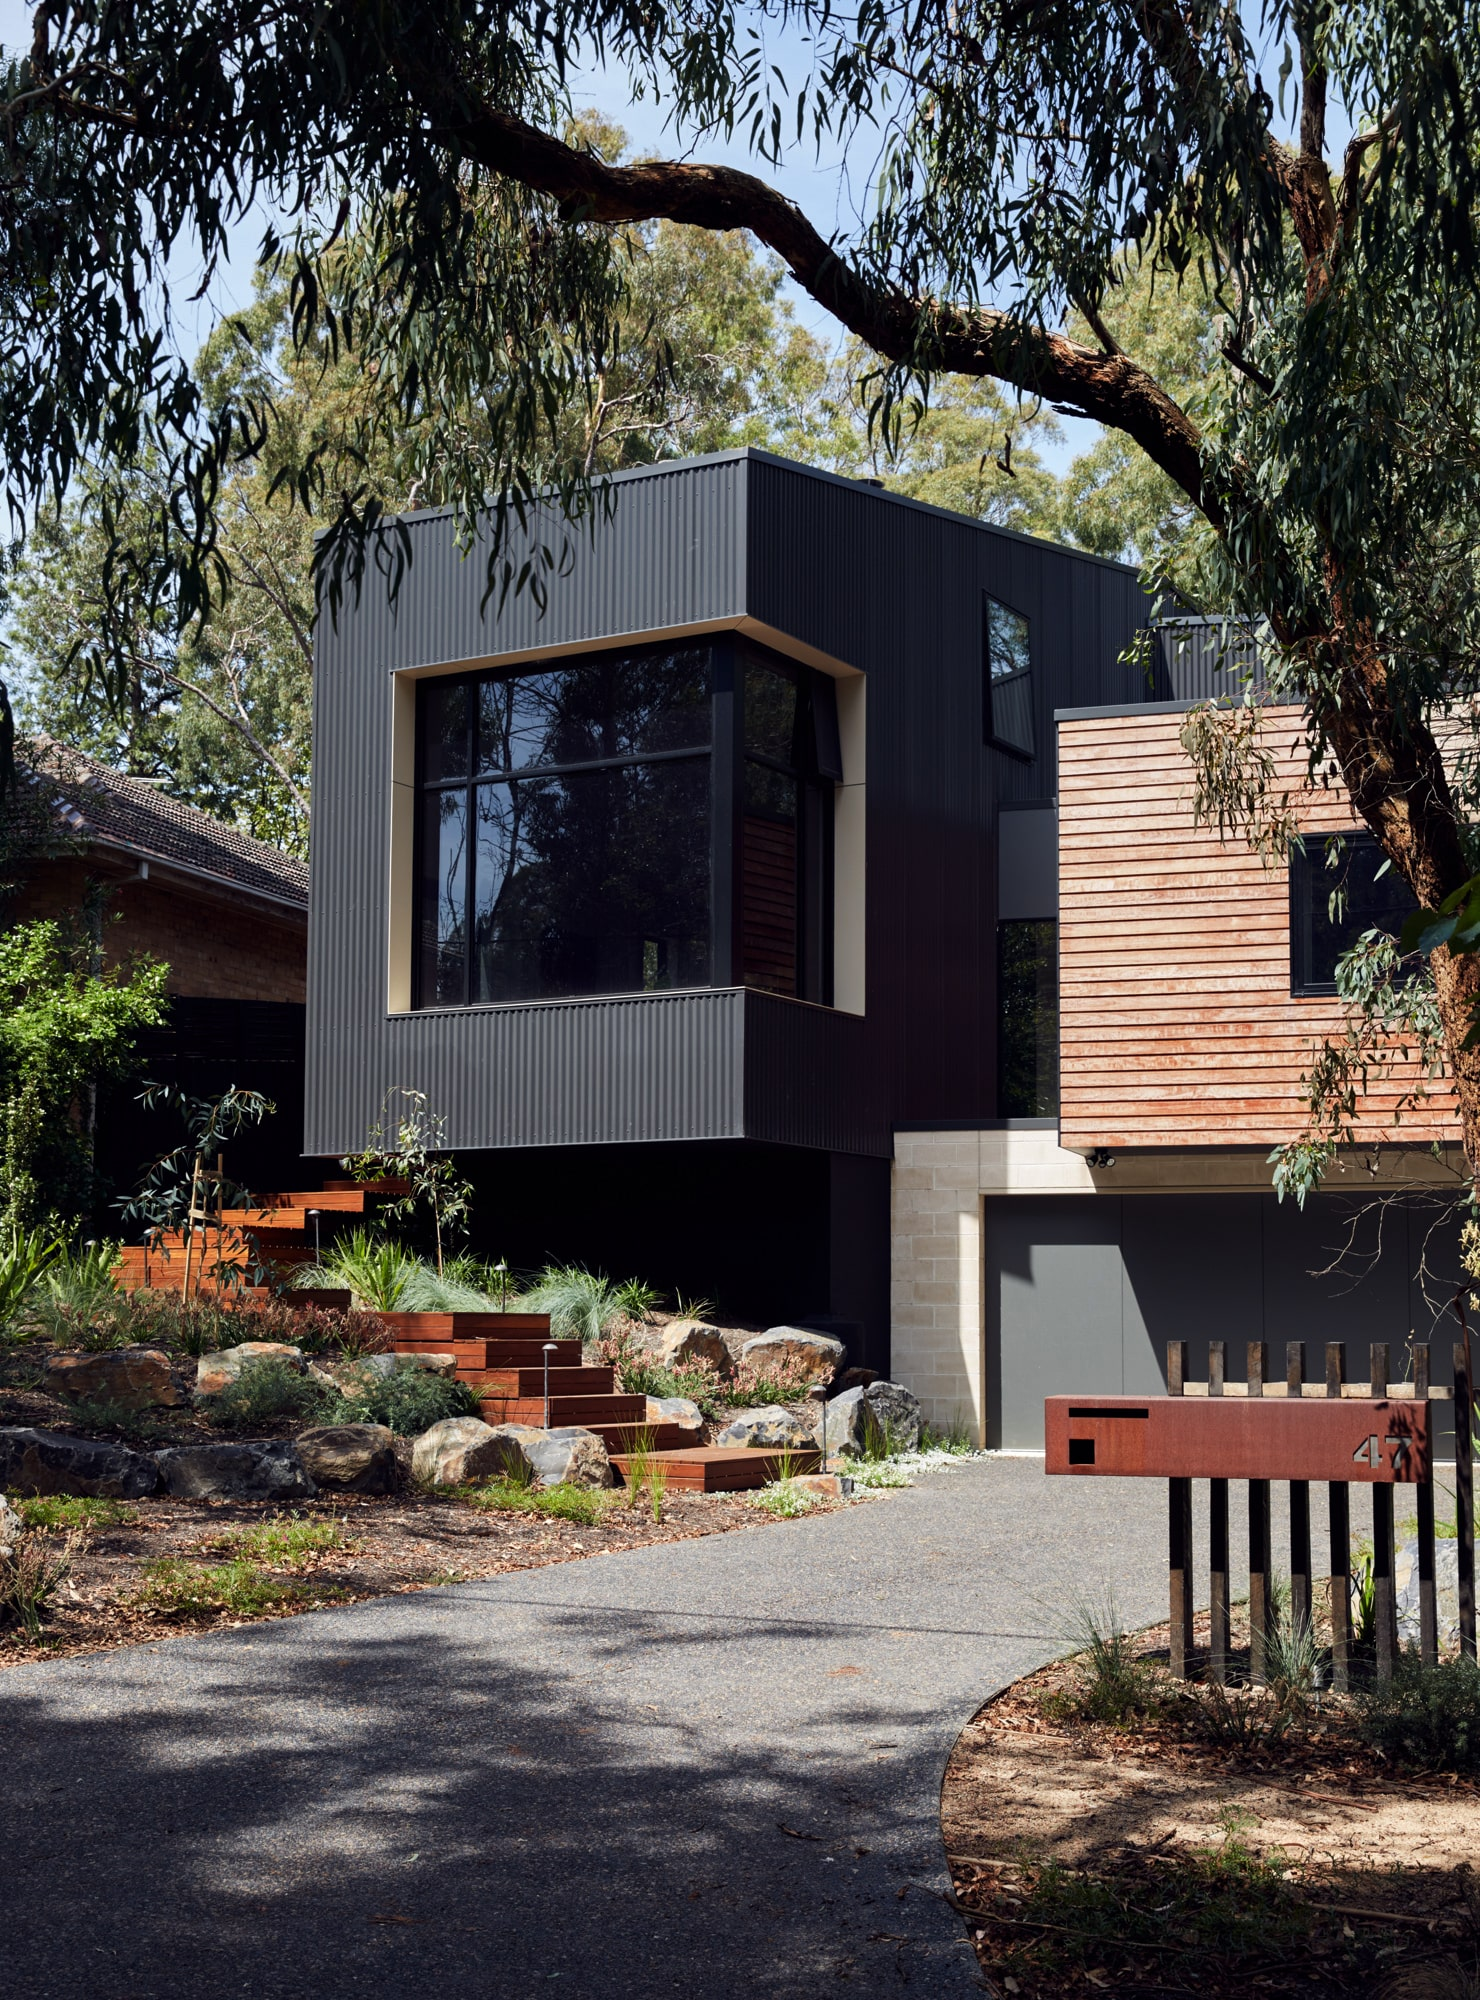 Gallery Of Blackburn House By Archiblox Local Australian Interior Architecture And Residential Design Blackburn, Vic Image 16